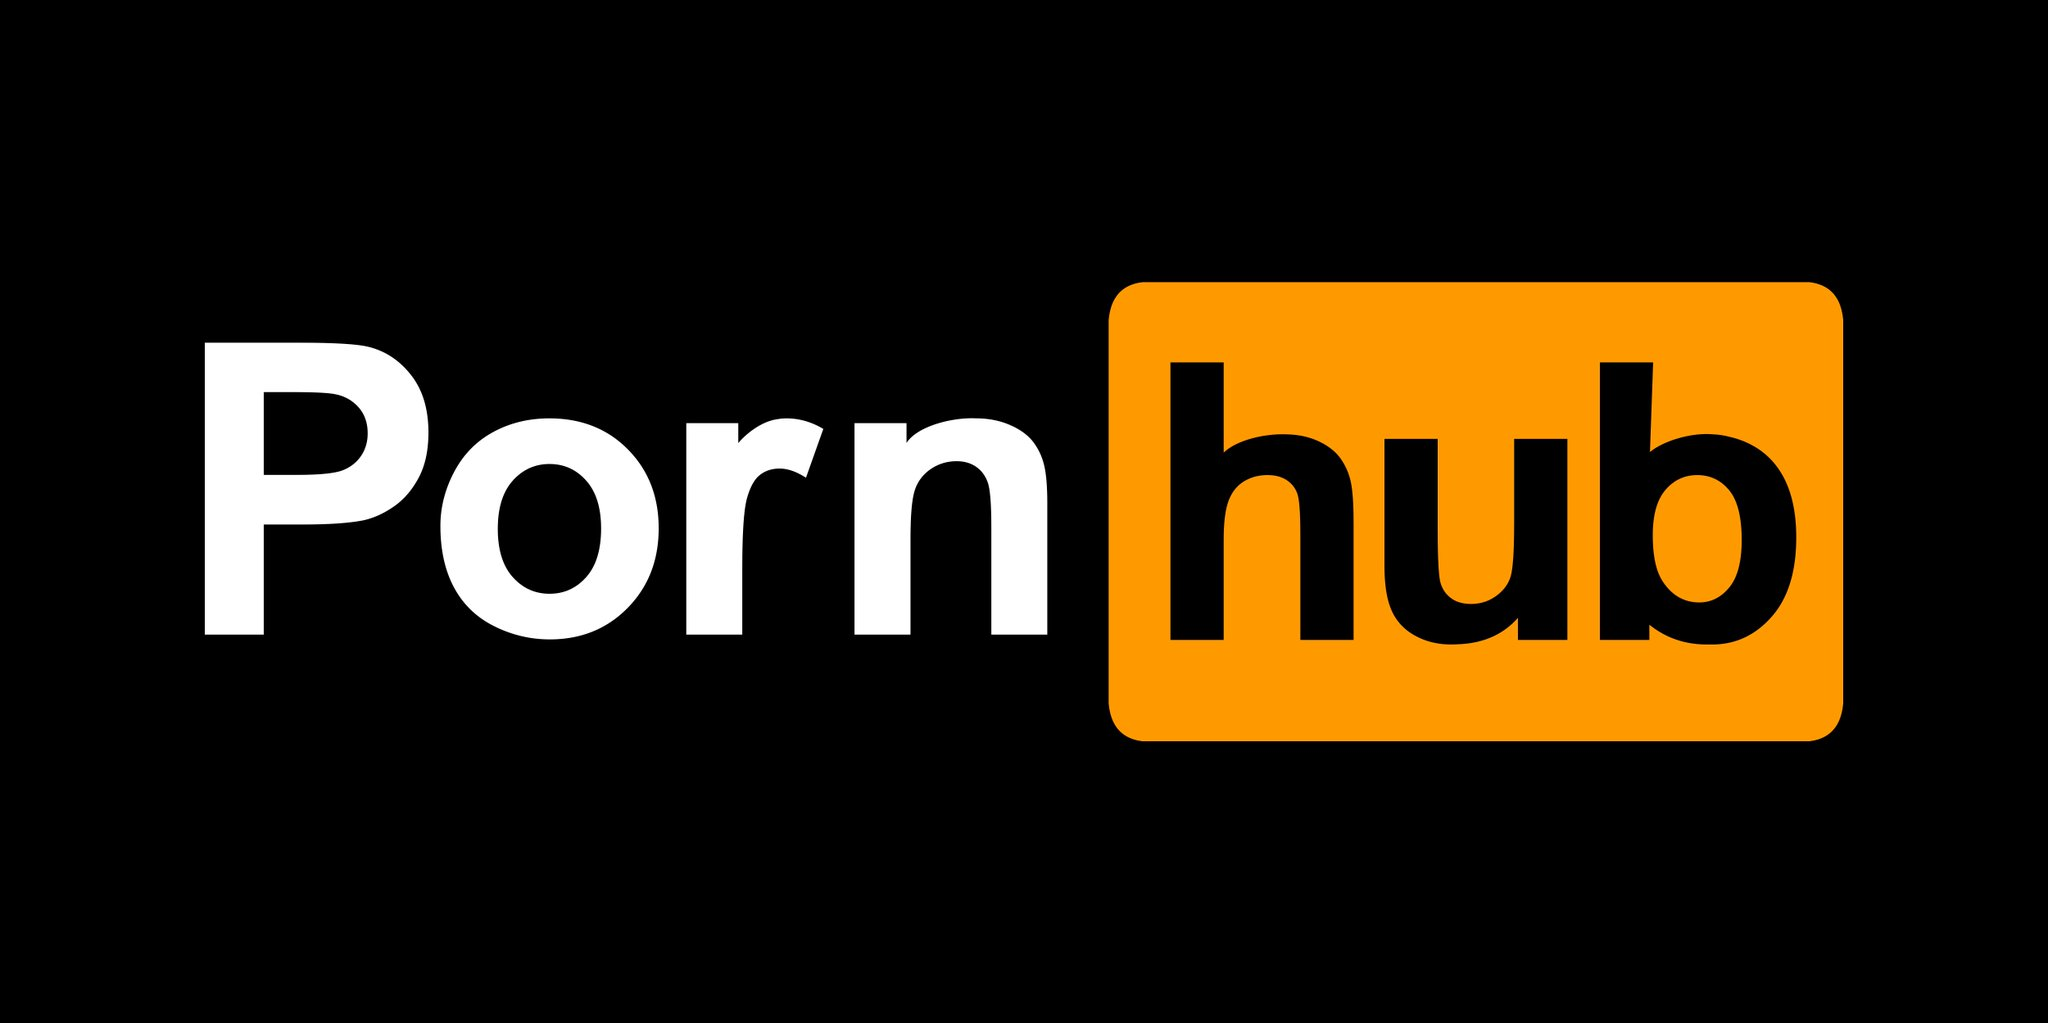 Pornhub Reveals Most Commonly Misspelled Search Terms